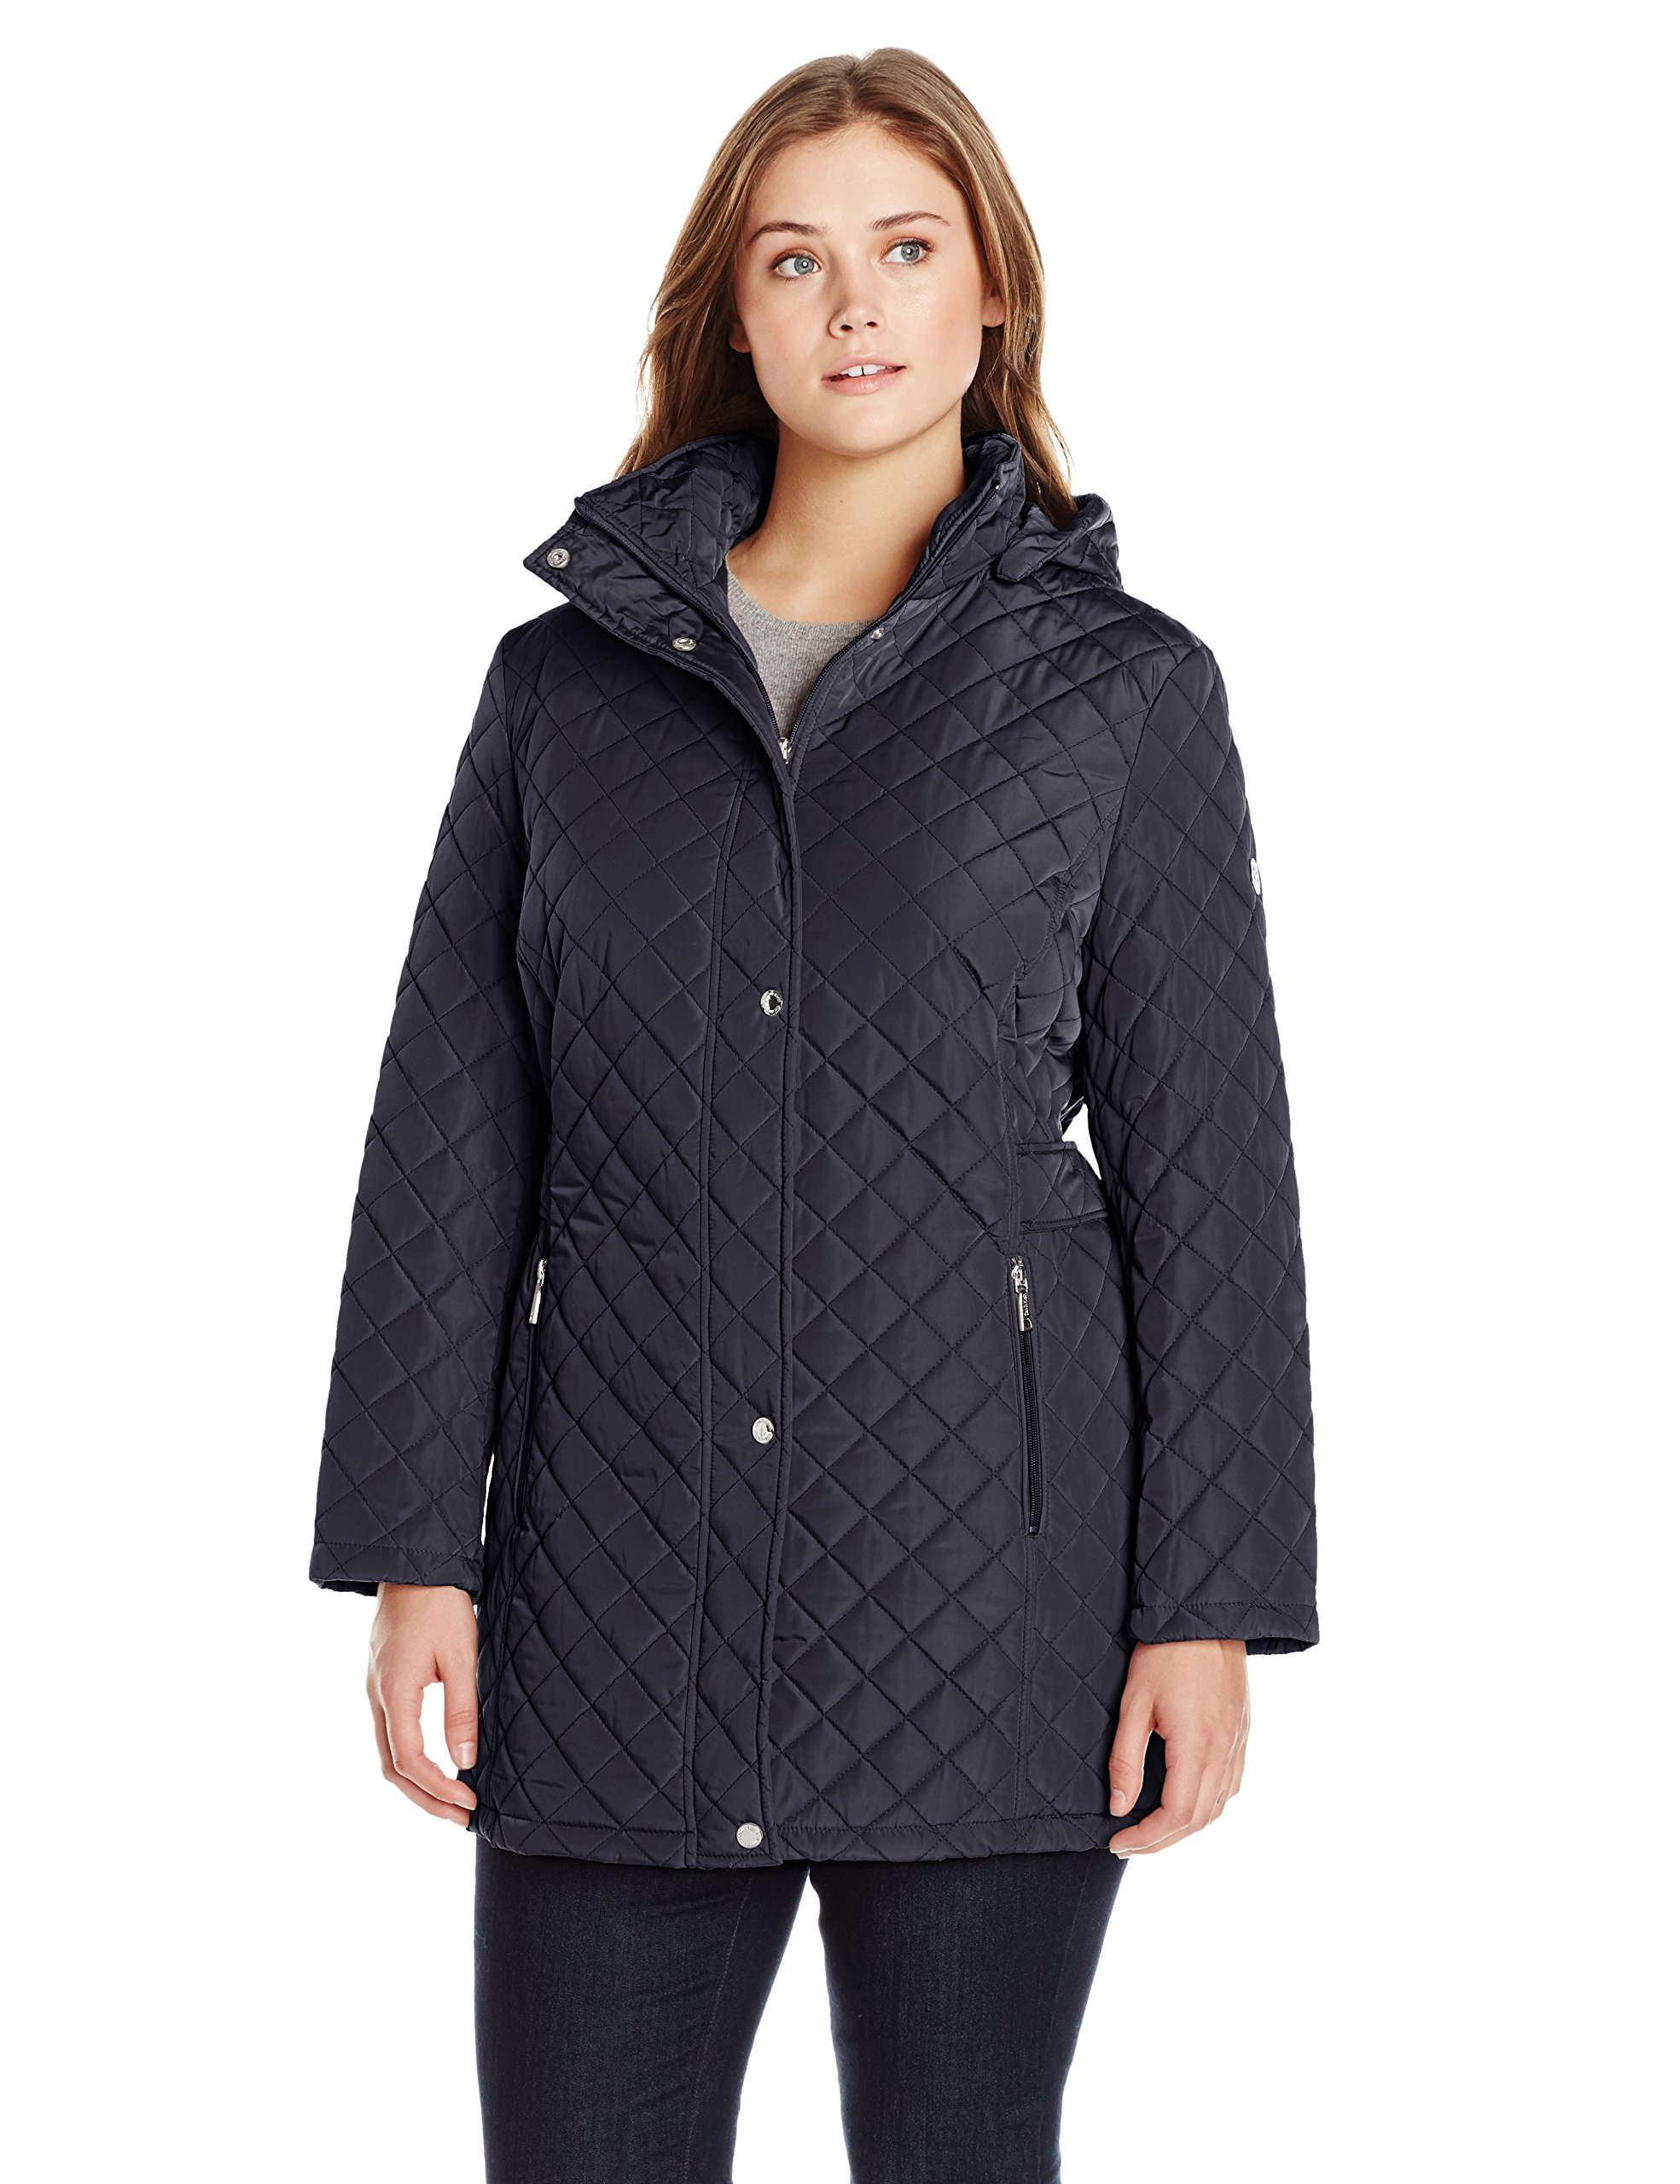 Calvin Klein Women's Plus-Size Classic Quilted Jacket with Side Tabs, Navy, 2X by Calvin Klein